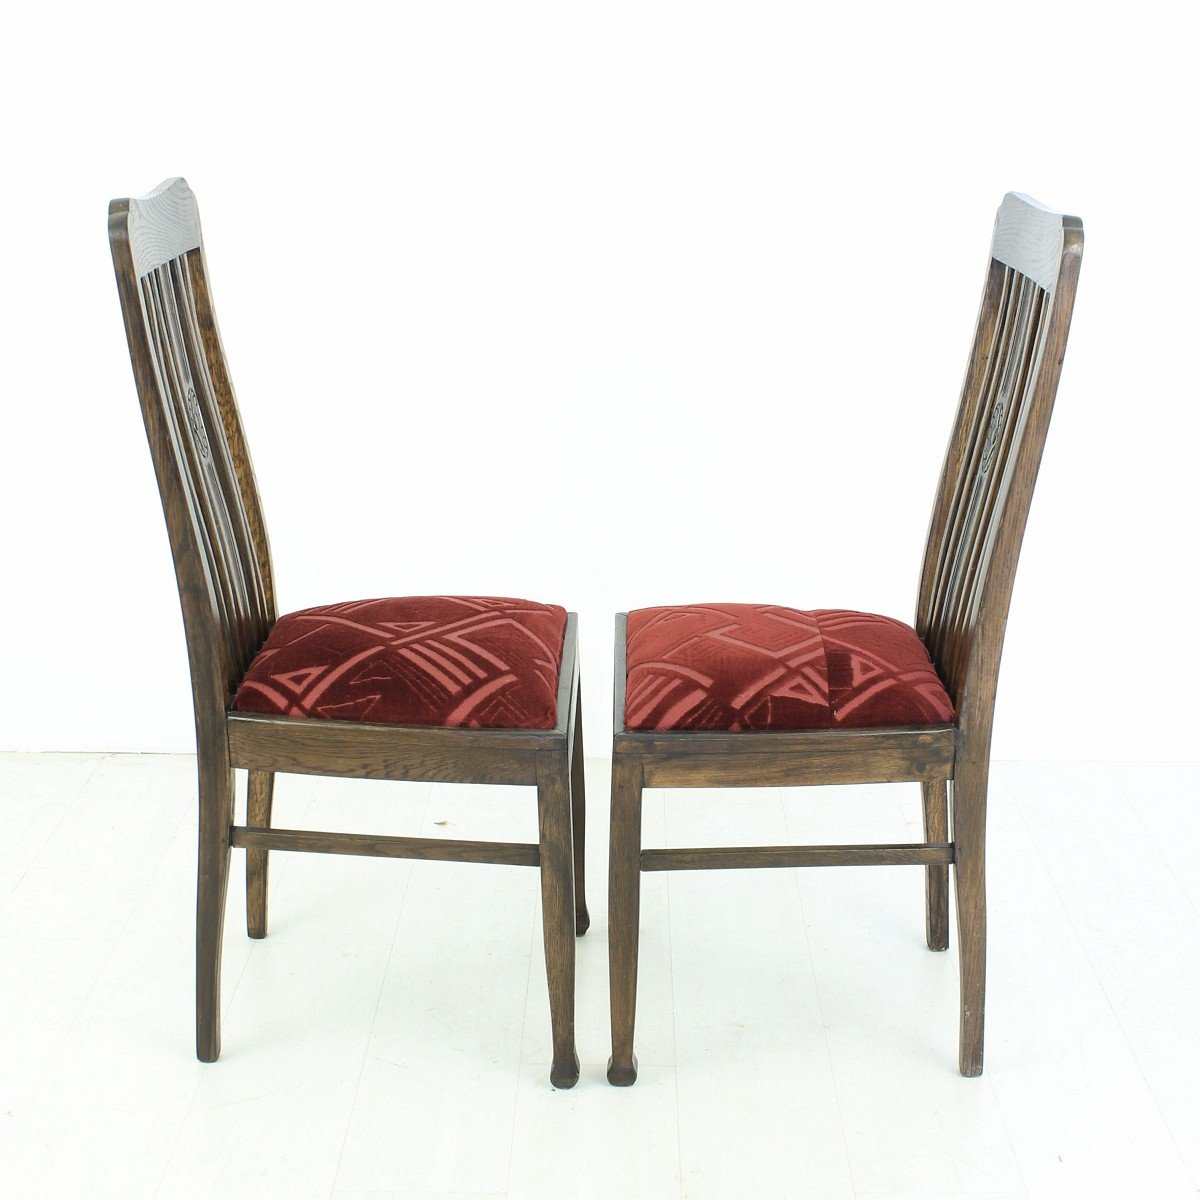 Vintage Oak Dining Chairs 1920s Set of 2 for sale at Pamono